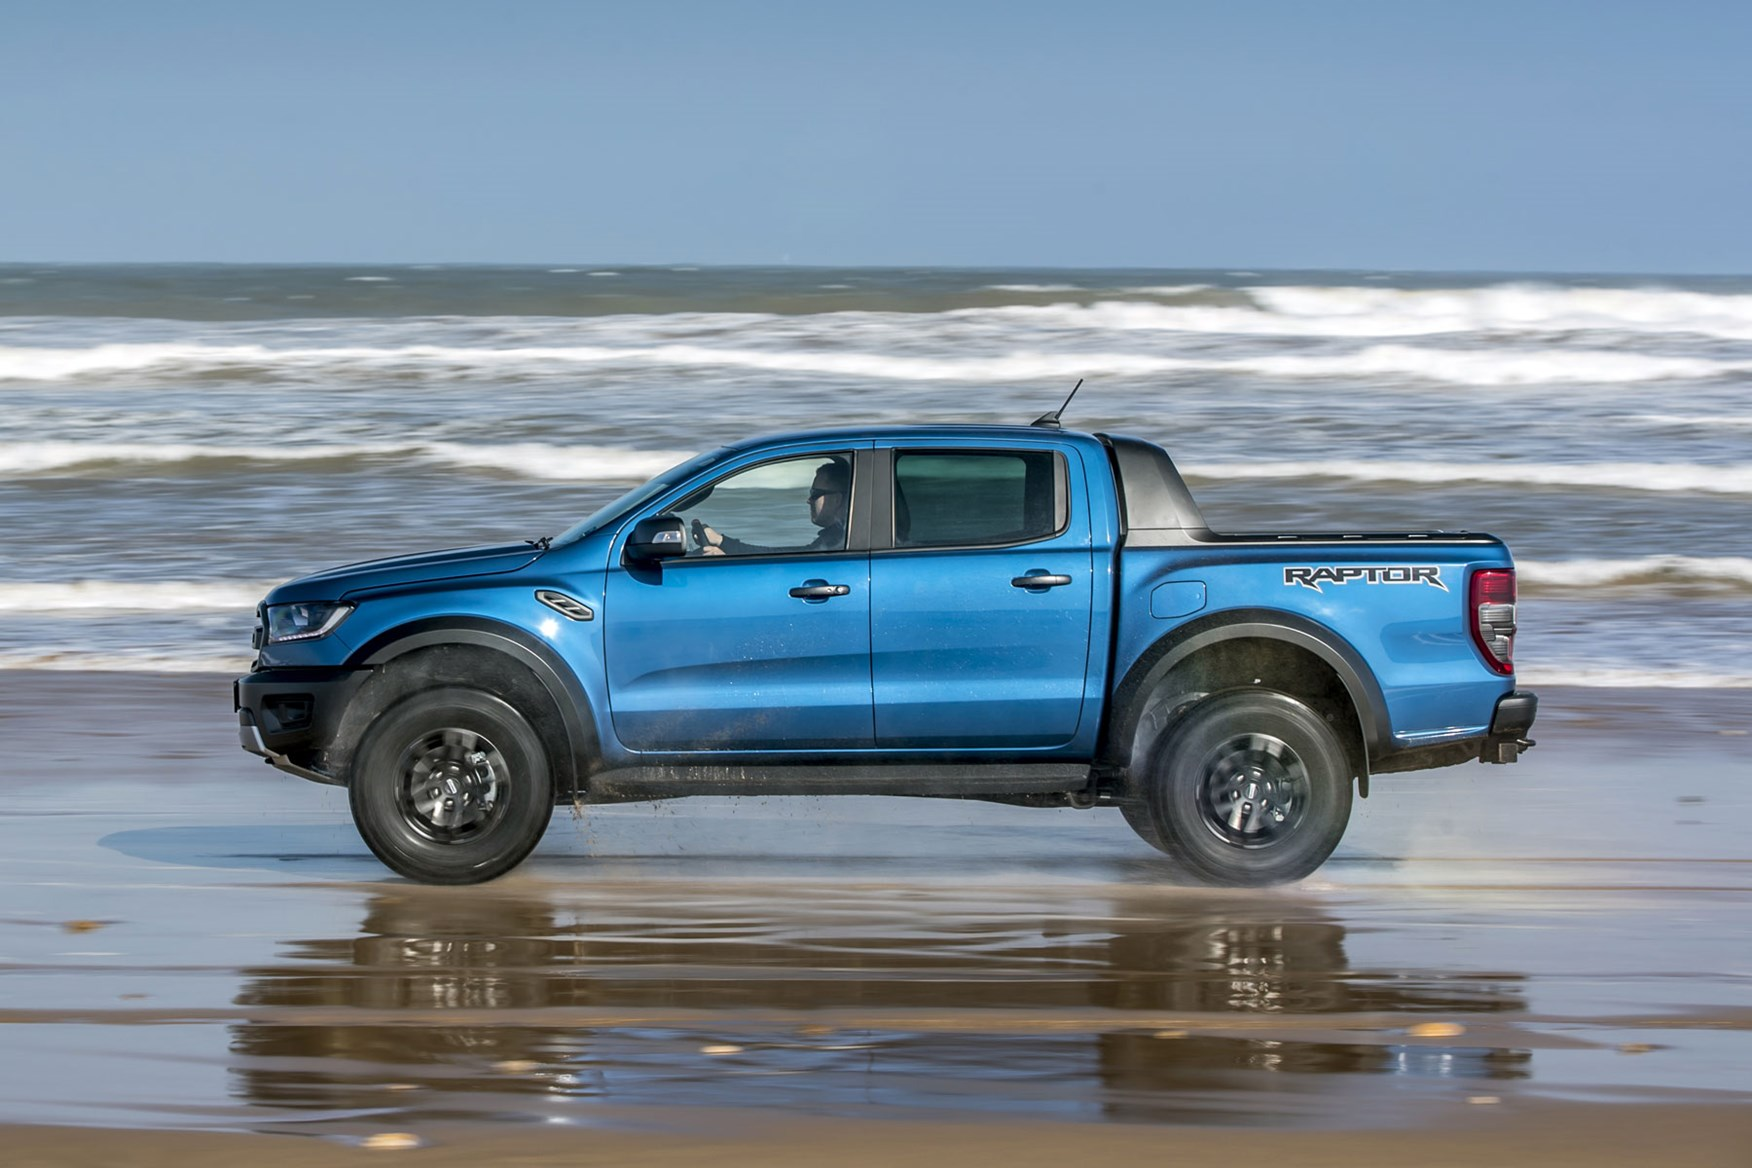 Ford Ranger Raptor review - side view, blue, on  beach in water, 2019